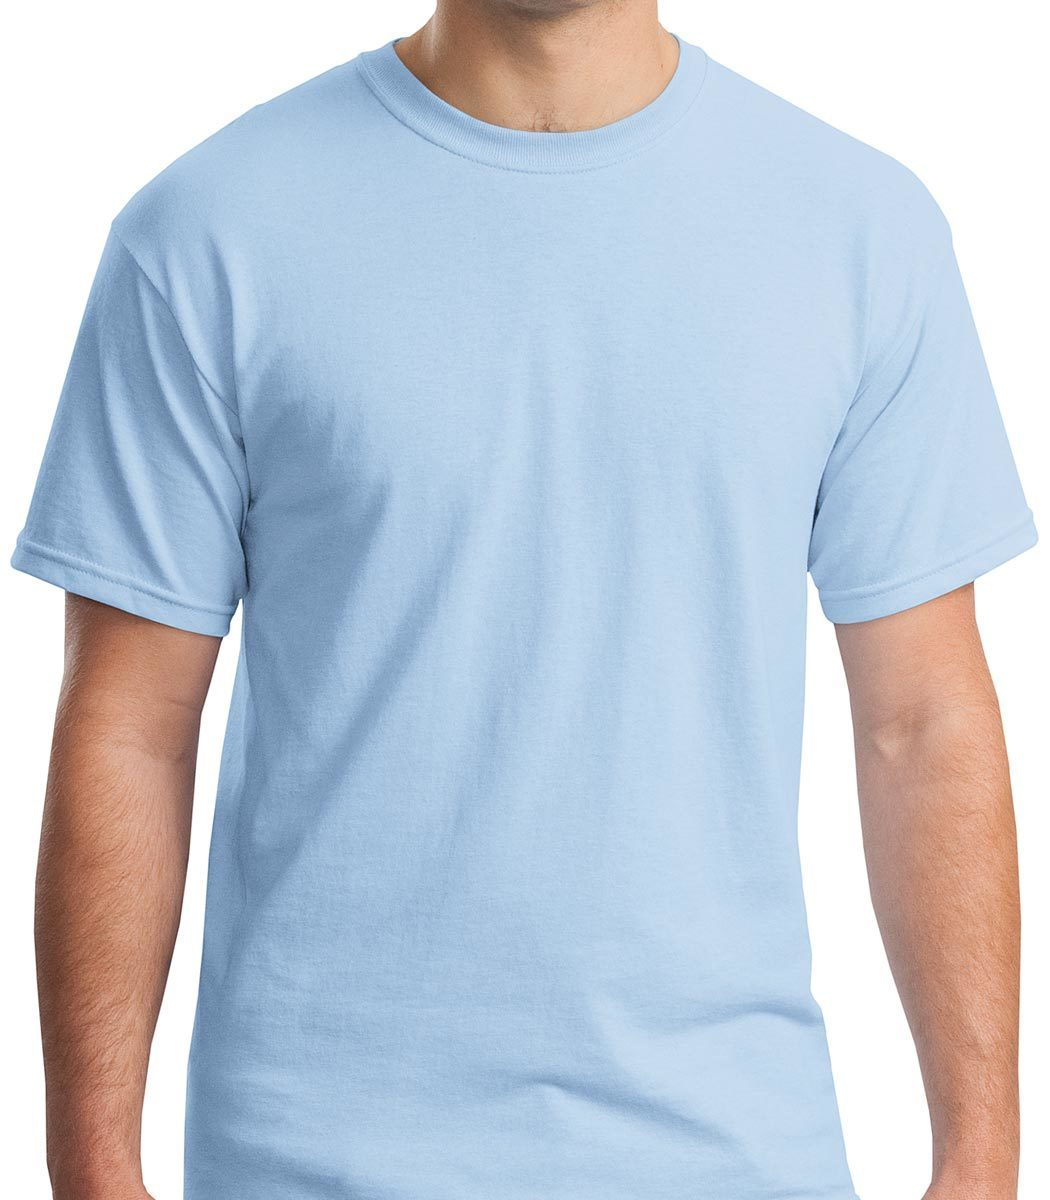 Buy Light Blue T Shirt 51 Off Share Discount